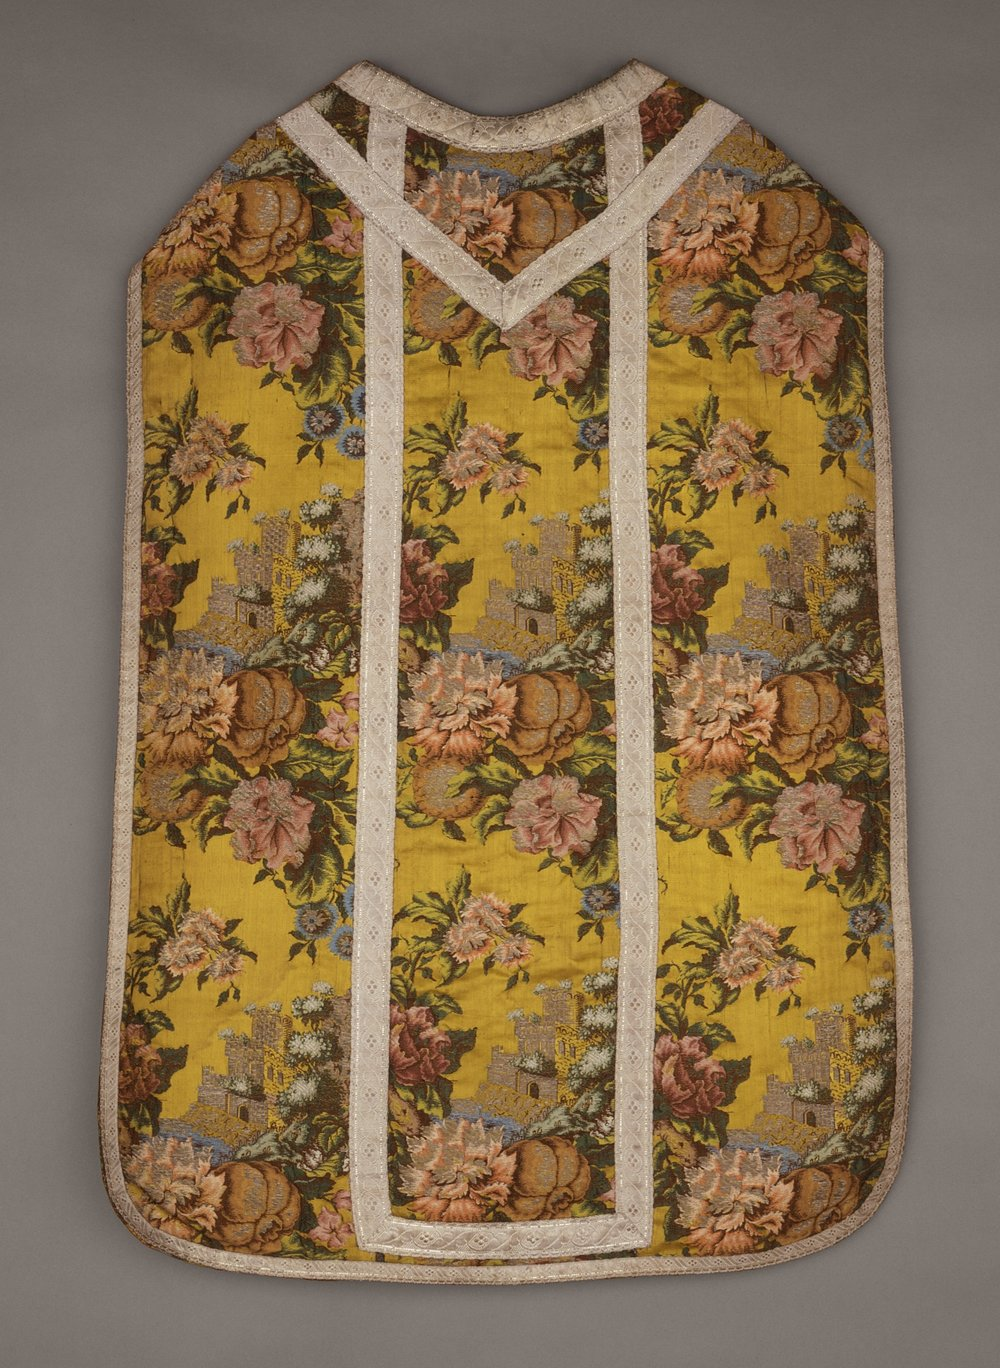 Eighteenth-century chasuble with floral embroidery. Image via WikiCommons.